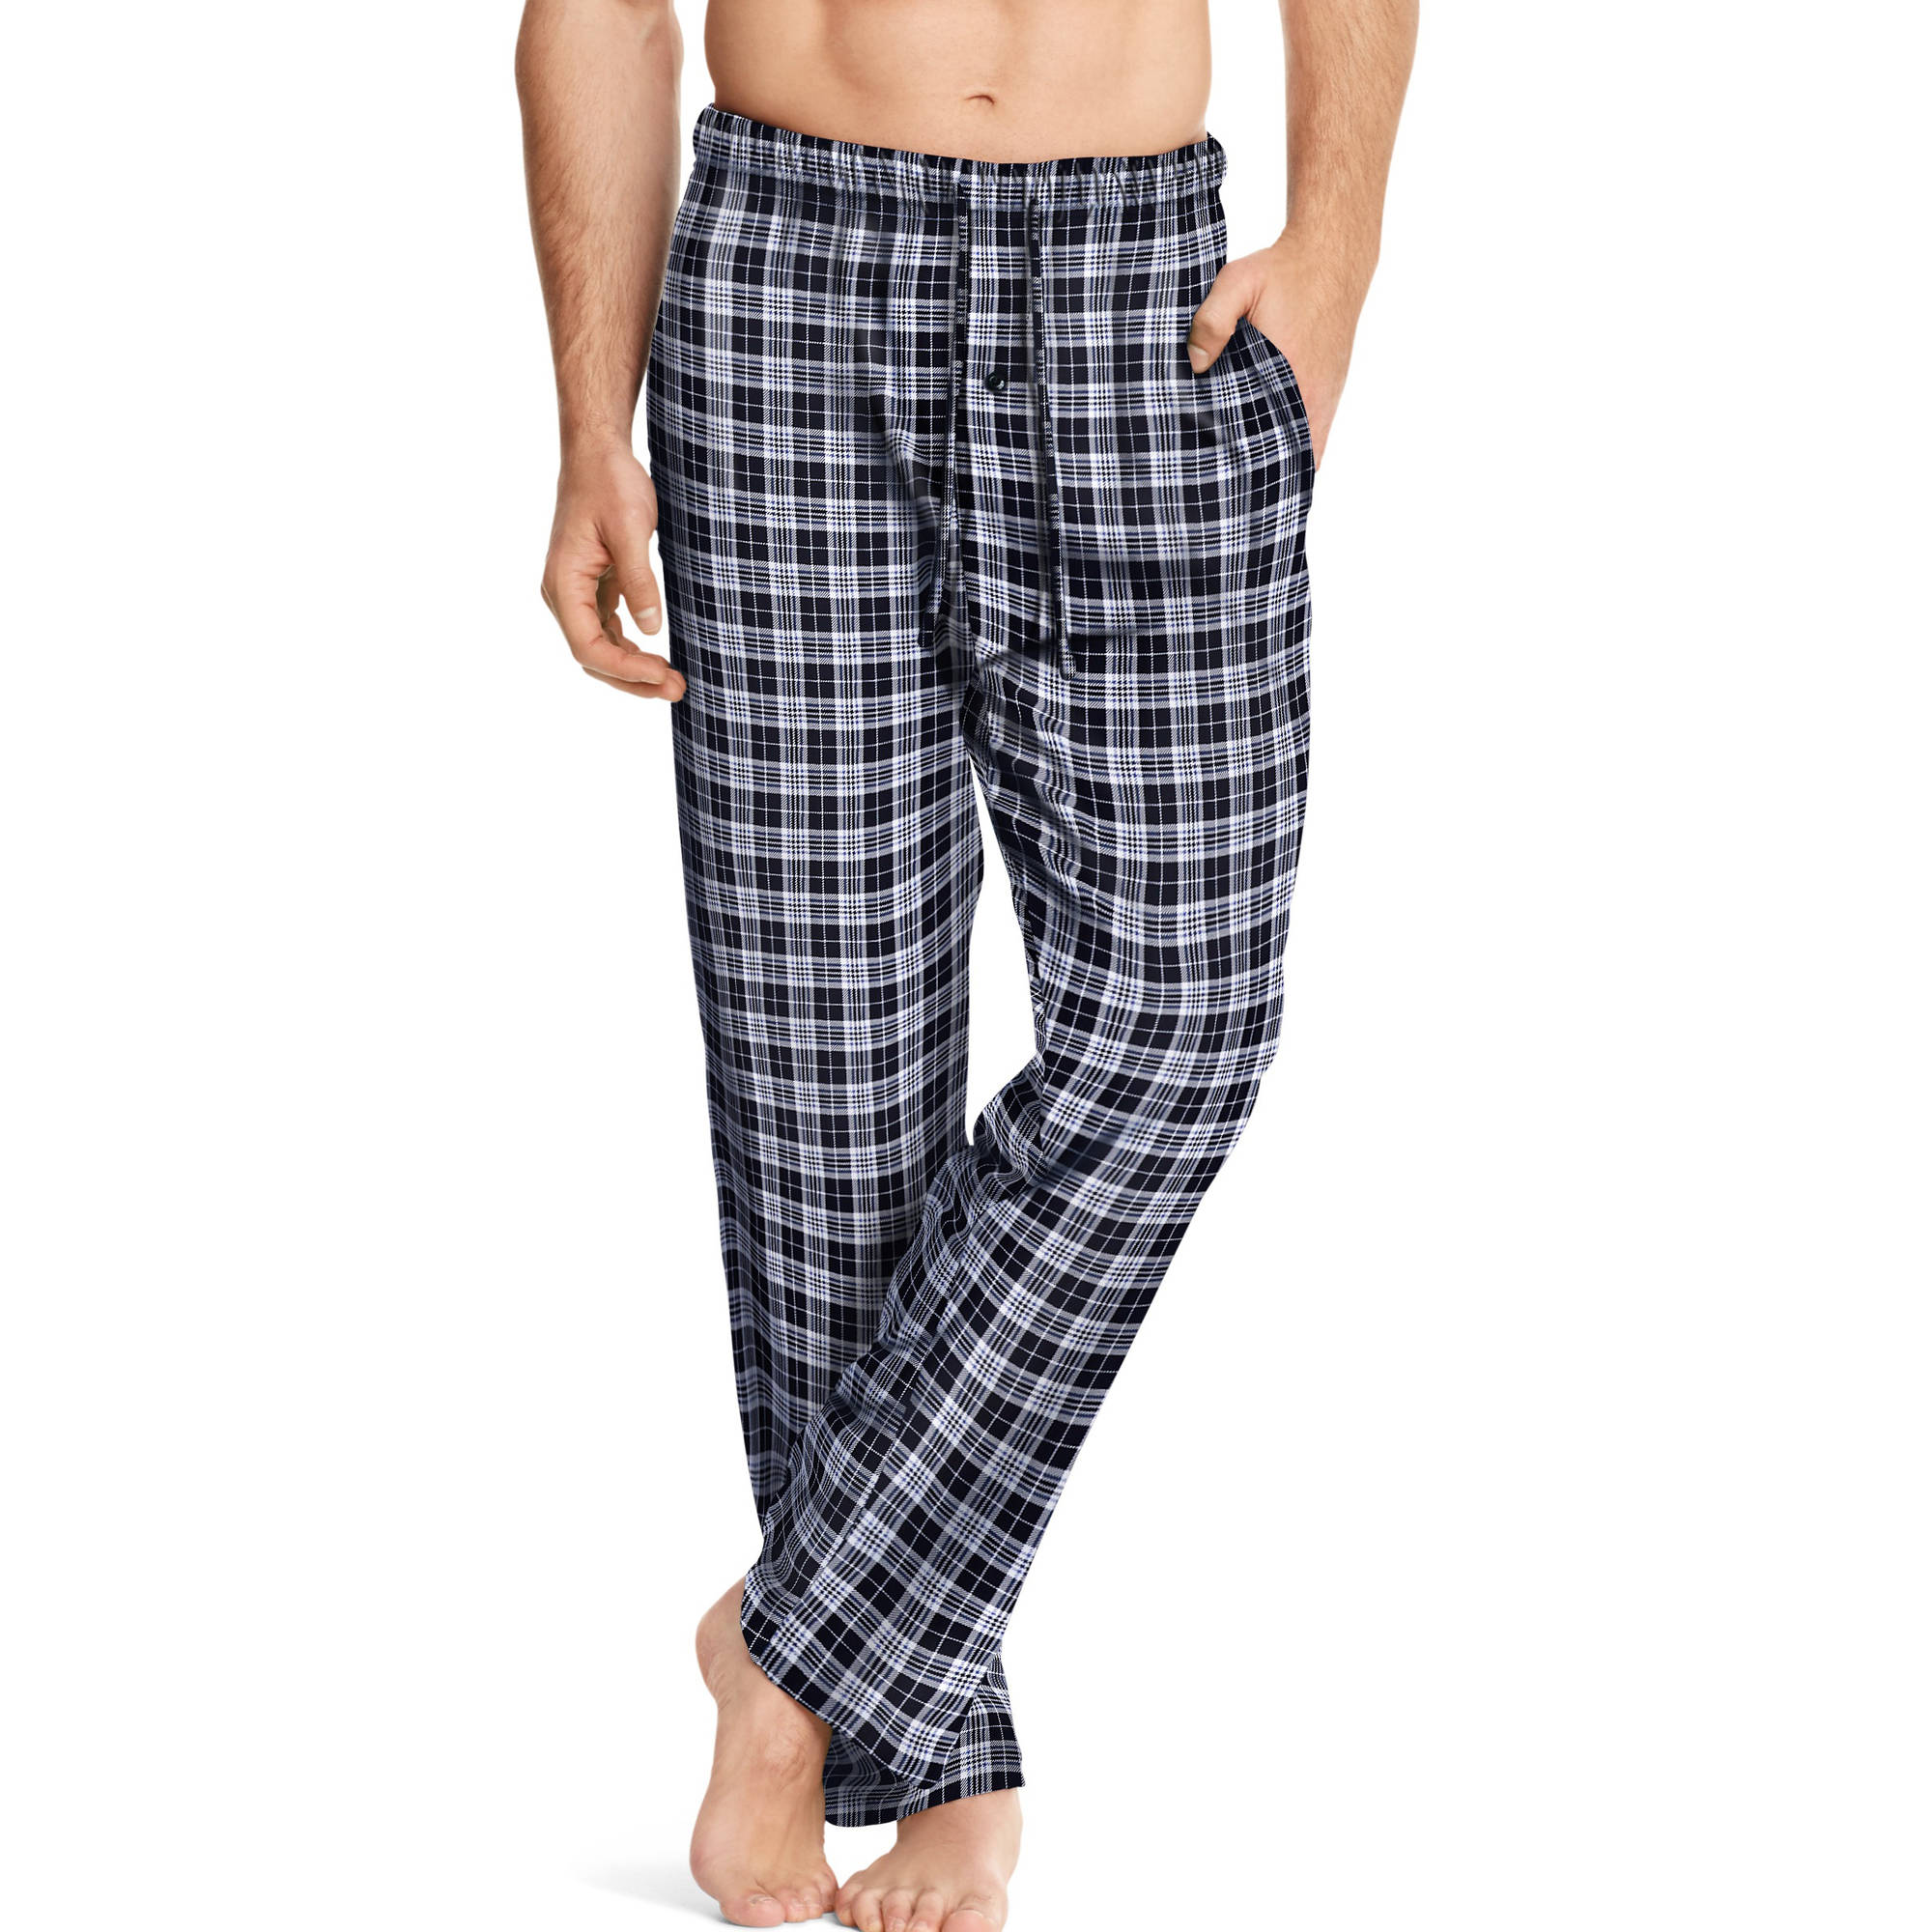 Hanes Men's Printed Sleep Pant